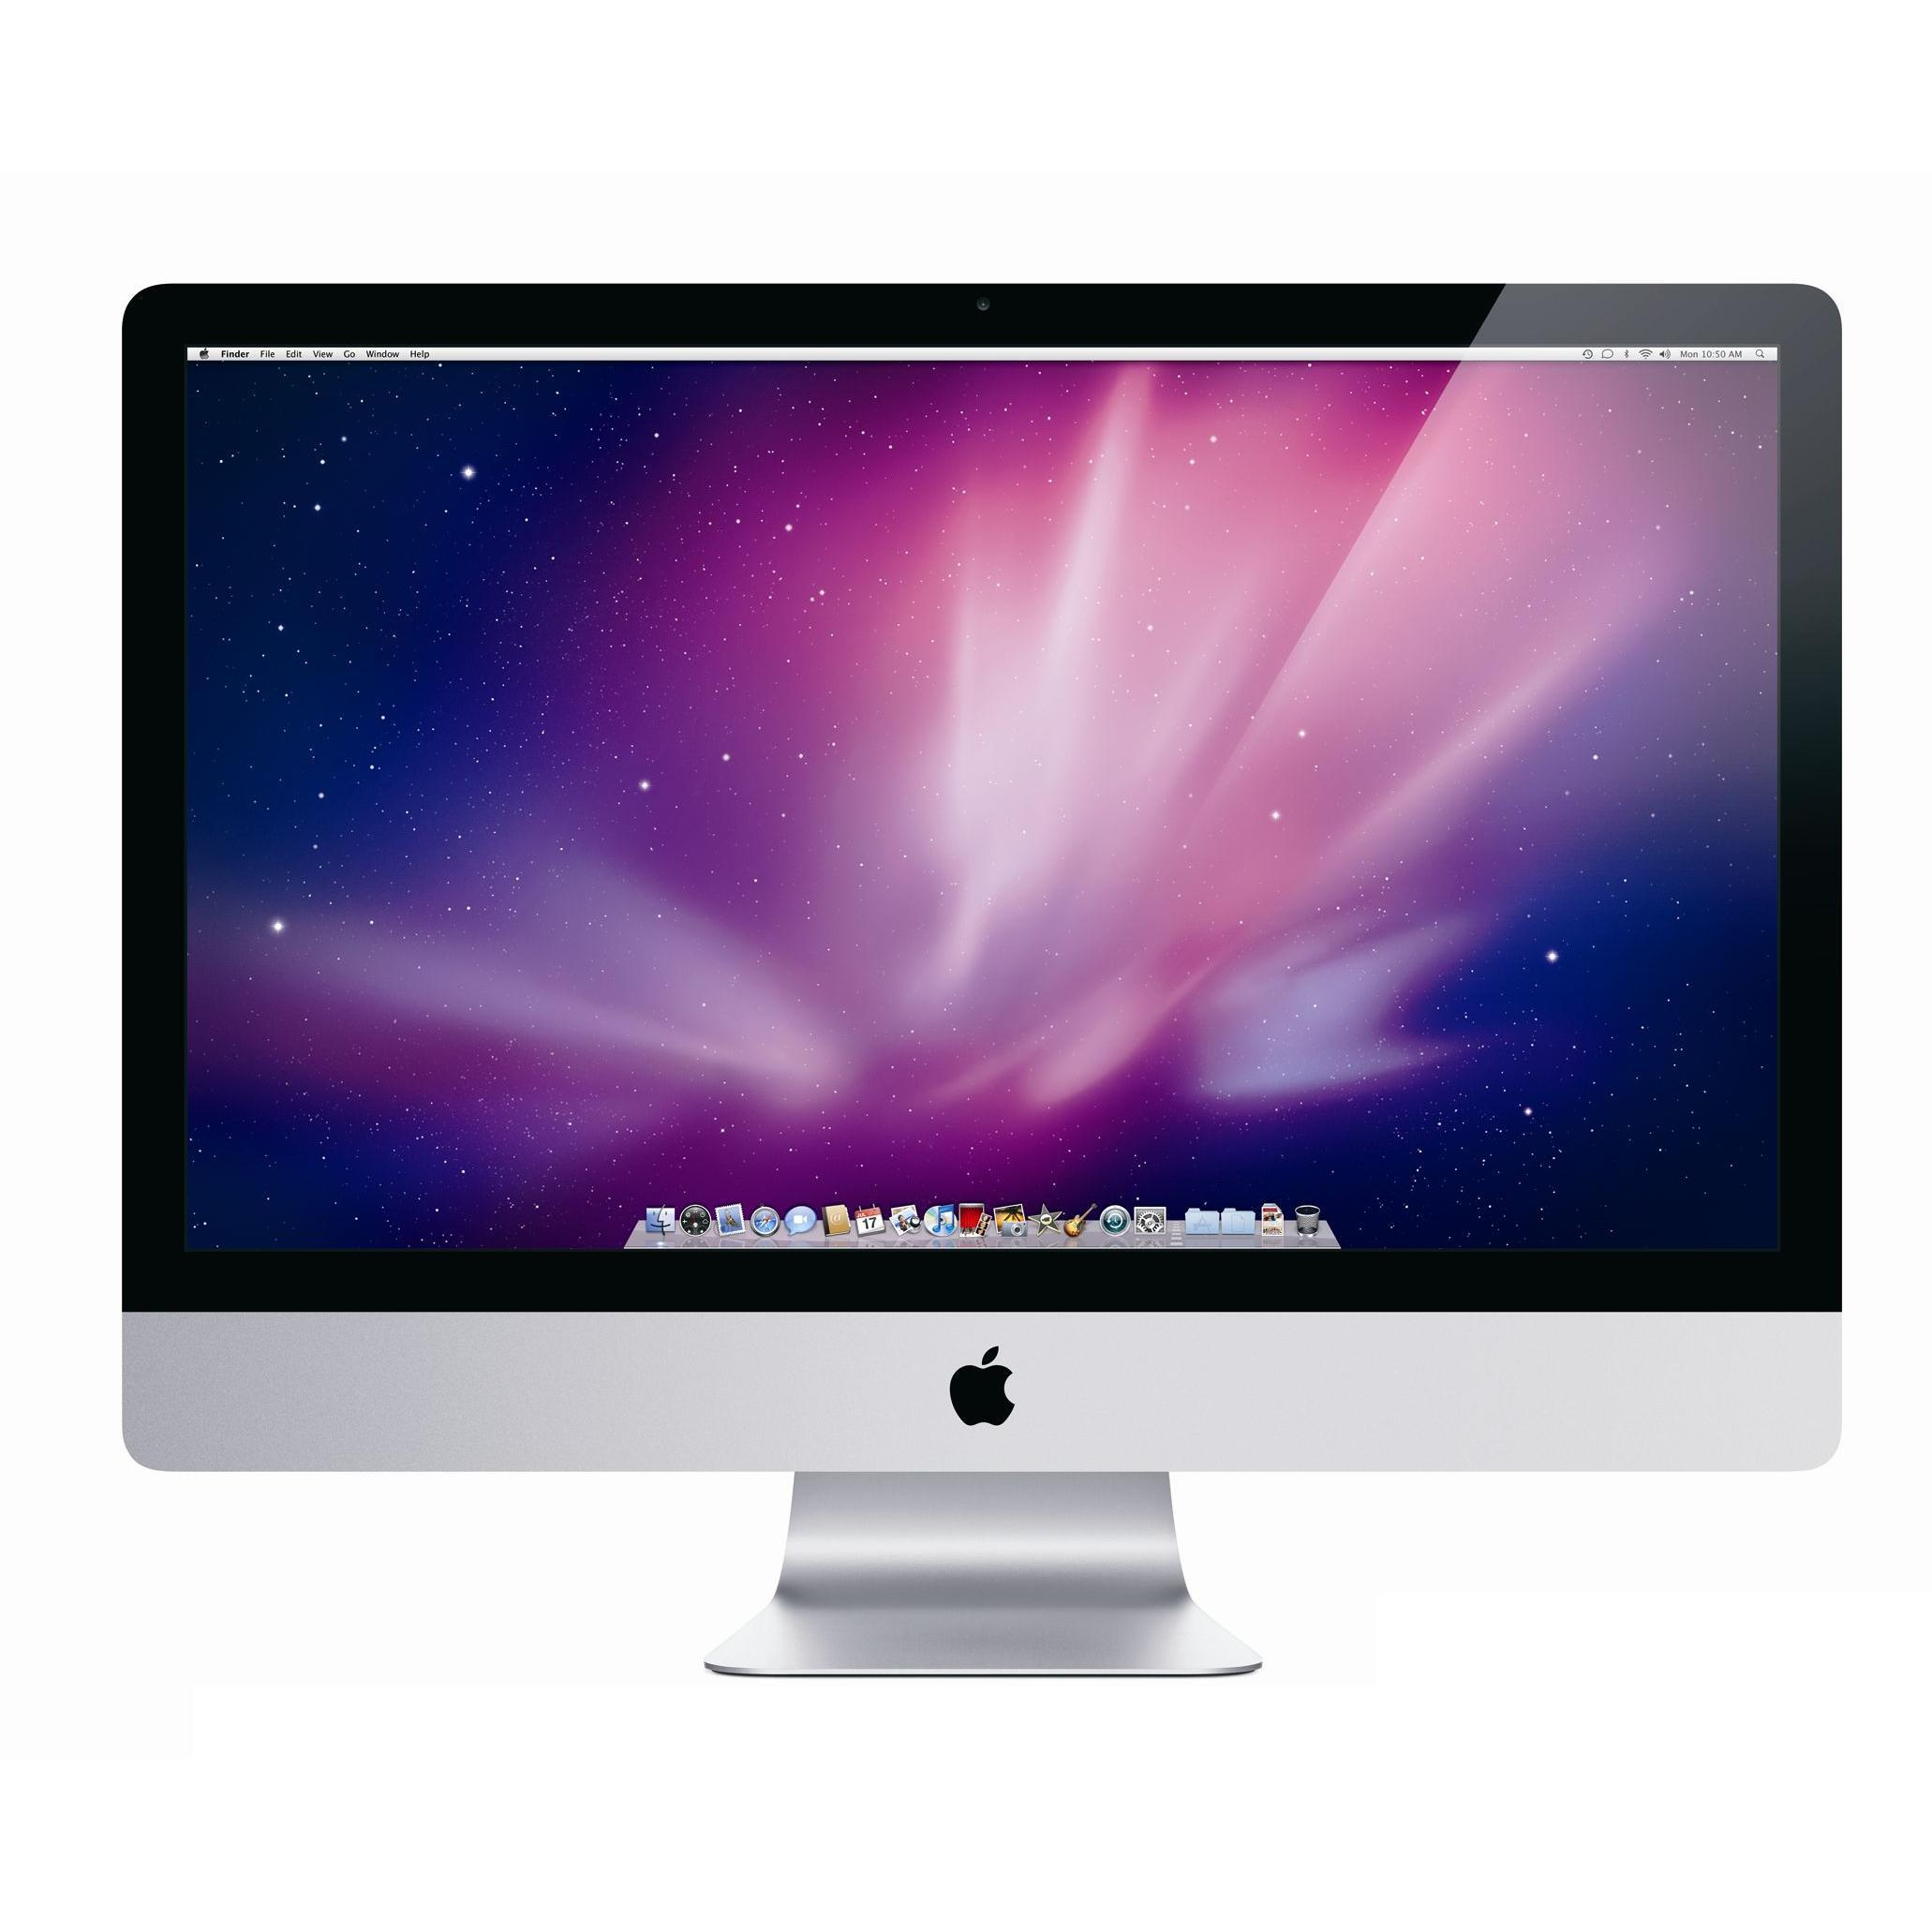 iMac 27-inch (Late 2009) Core 2 Duo 3.06GHz - HDD 1 TB - 4GB AZERTY - French